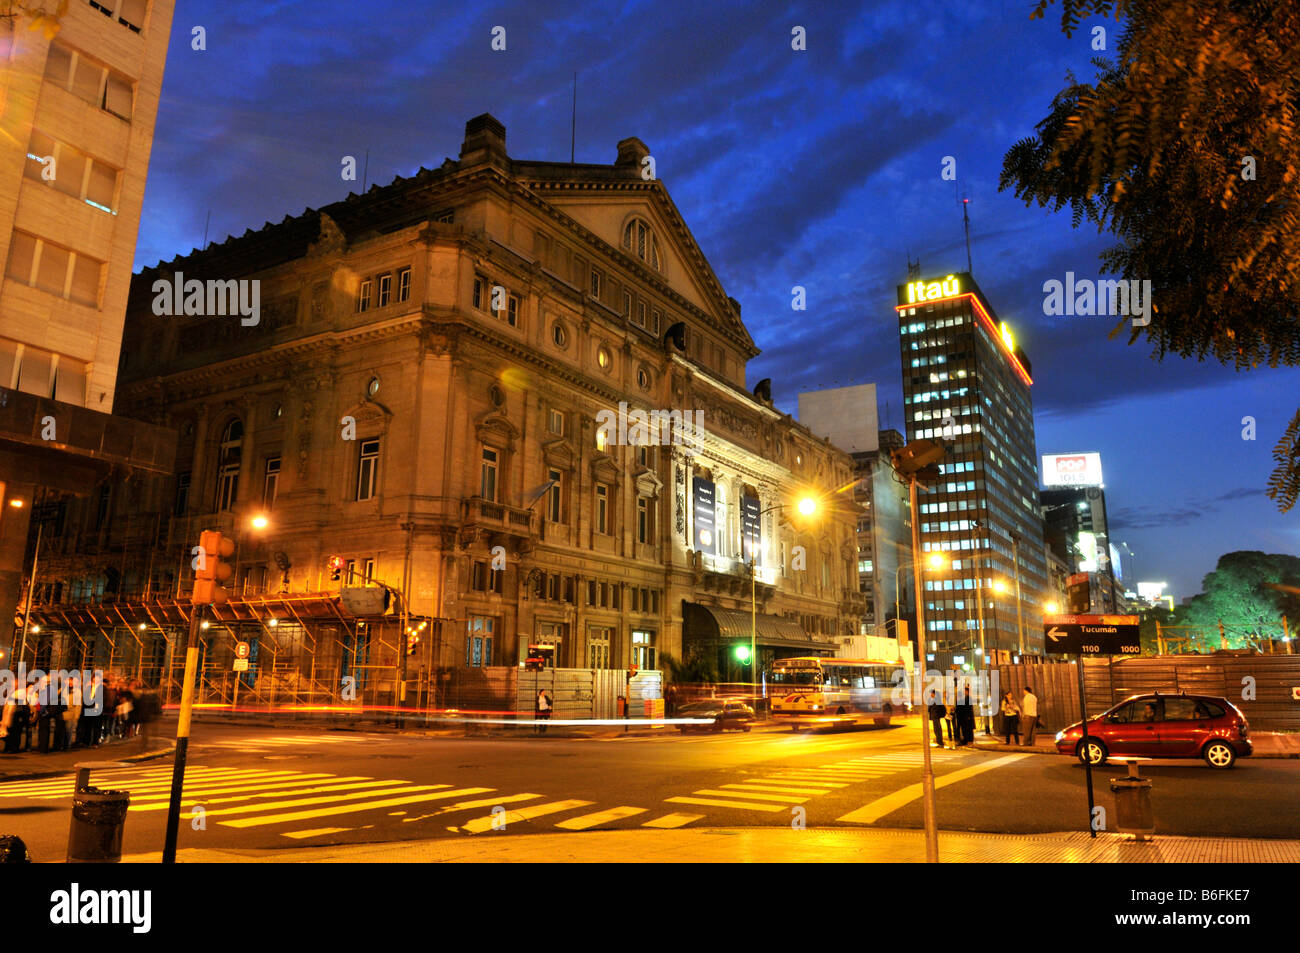 Teatro Colon at night, Buenos Aires, Argentina, South America - Stock Image